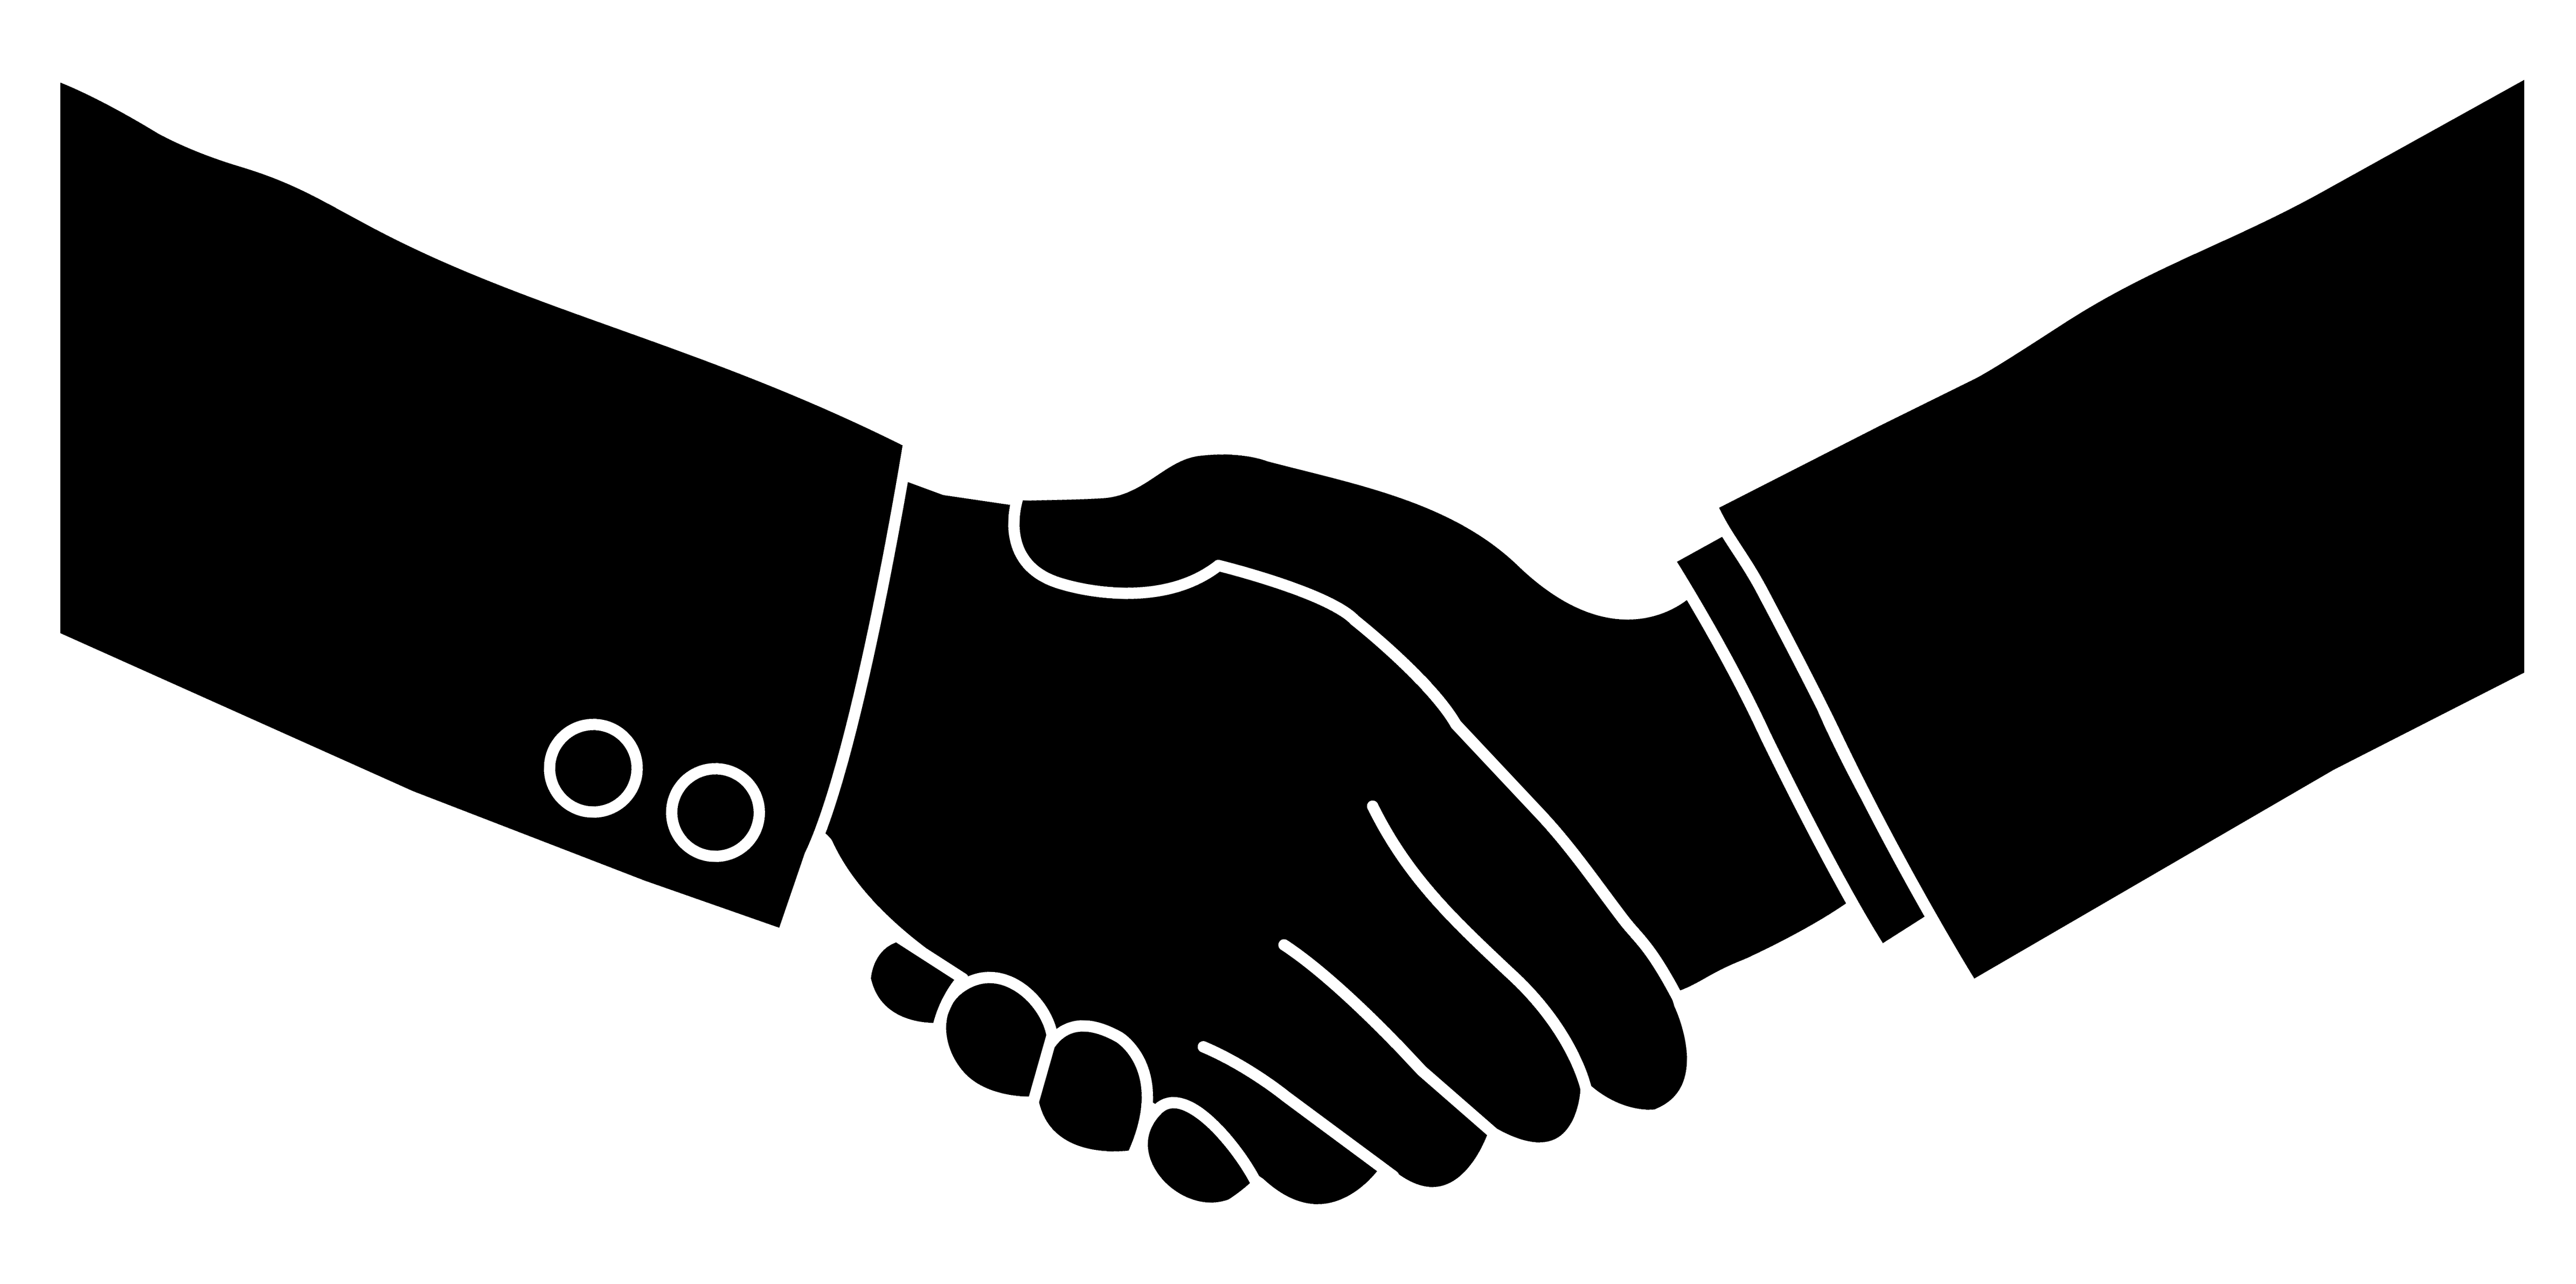 Handshake vector free download clip art on